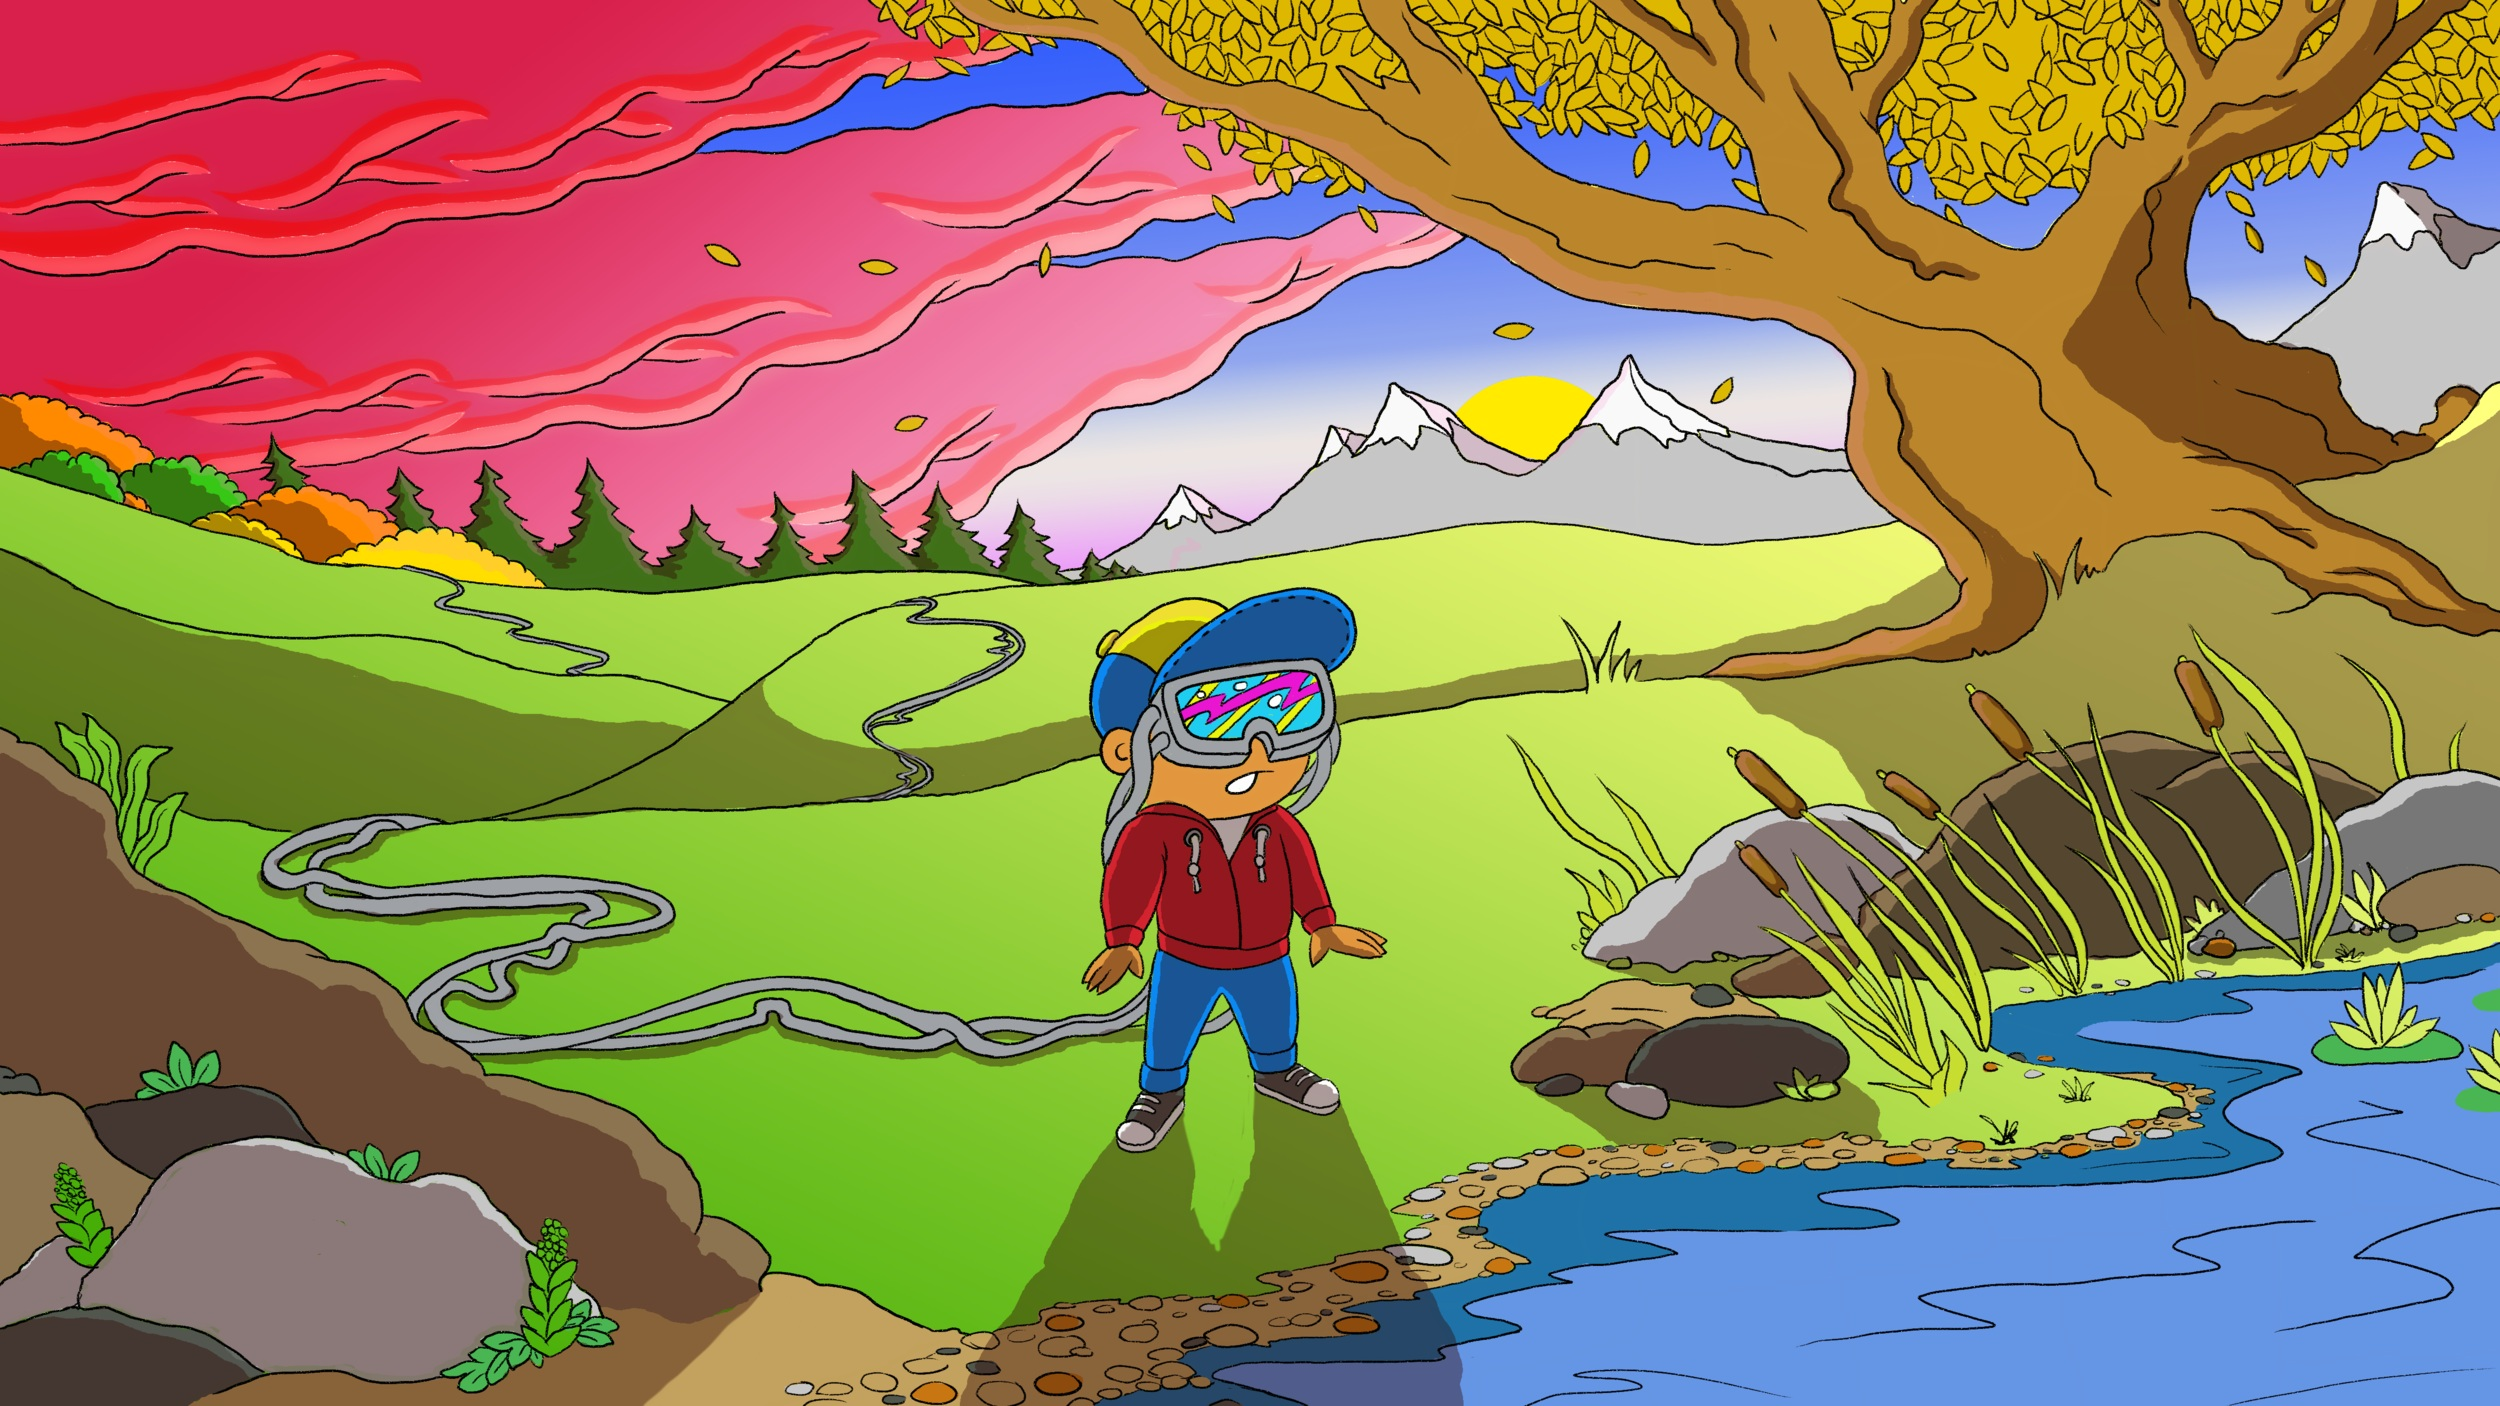 Animated Series - Are you ready for an adventure? We are actively seeking partners to help us tell the story of the Wonderful World of the Earthmounds! Join Jordan, a tech-obsessed tween, as his family moves to the country. Jordan learns that the Earth is alive, and far more fantastic than his favorite video games!